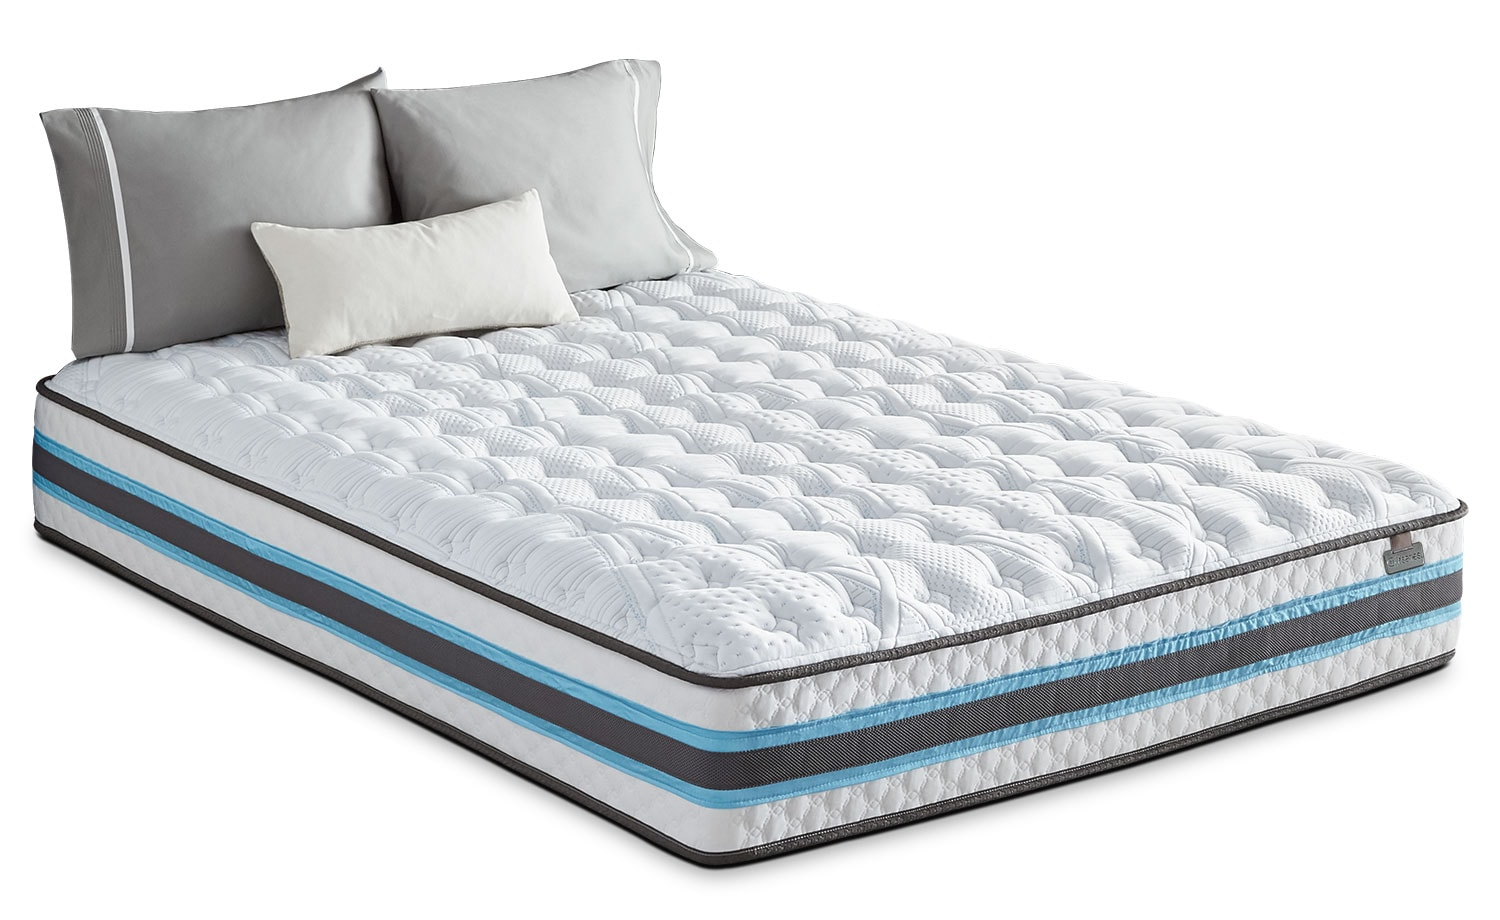 Mattresses and Bedding - Serta iSeries® Atmosphere Tight-Top Firm Twin Mattress